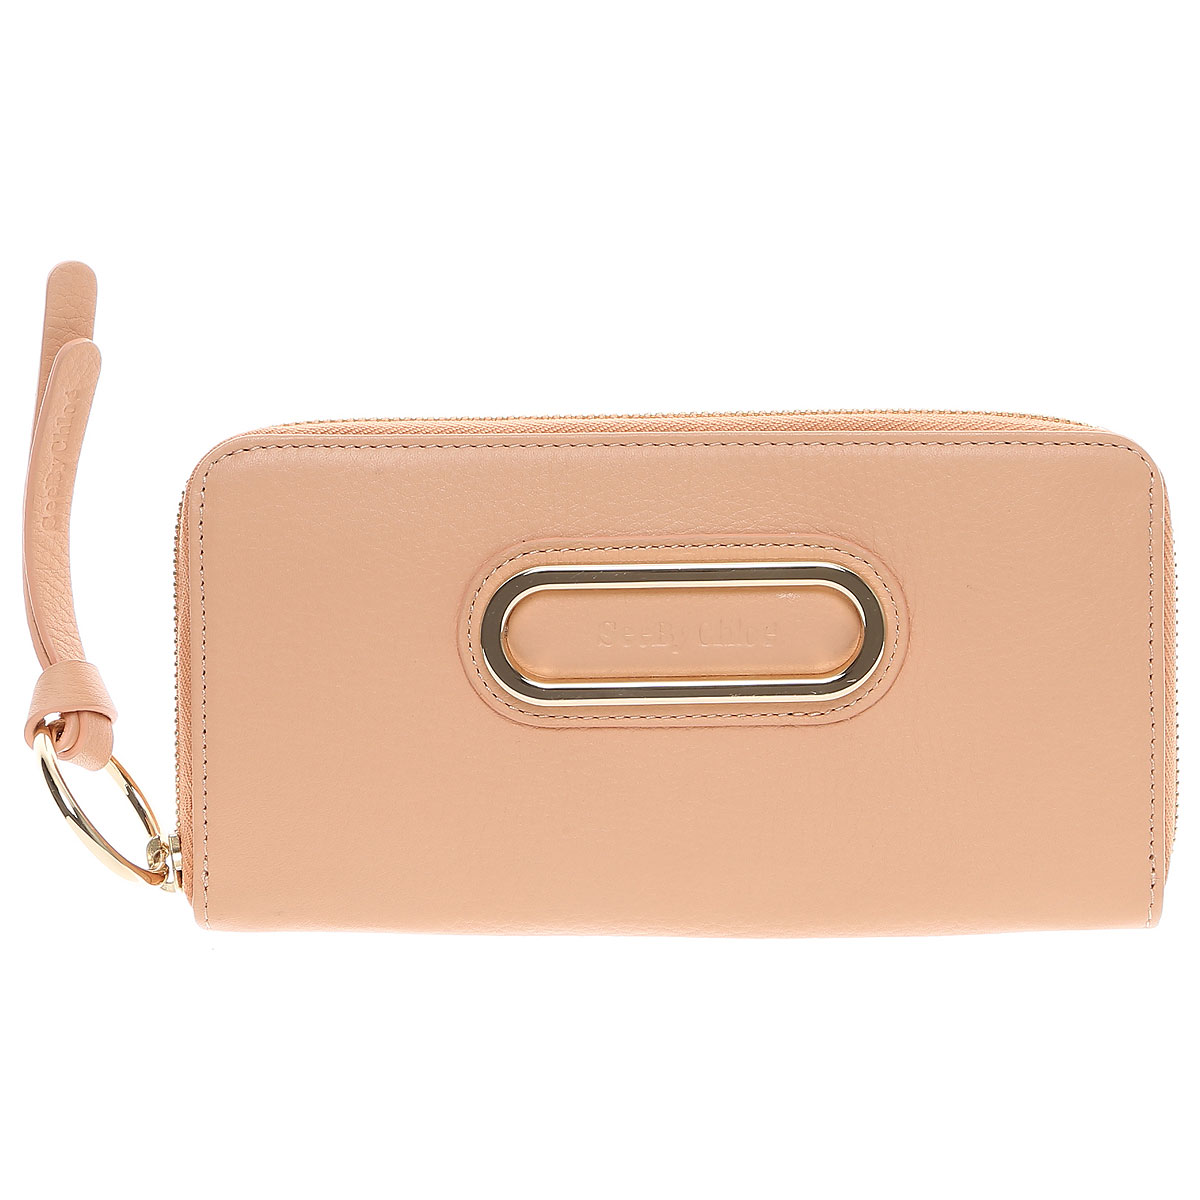 See By Chloe Wallet for Women Pink USA - GOOFASH